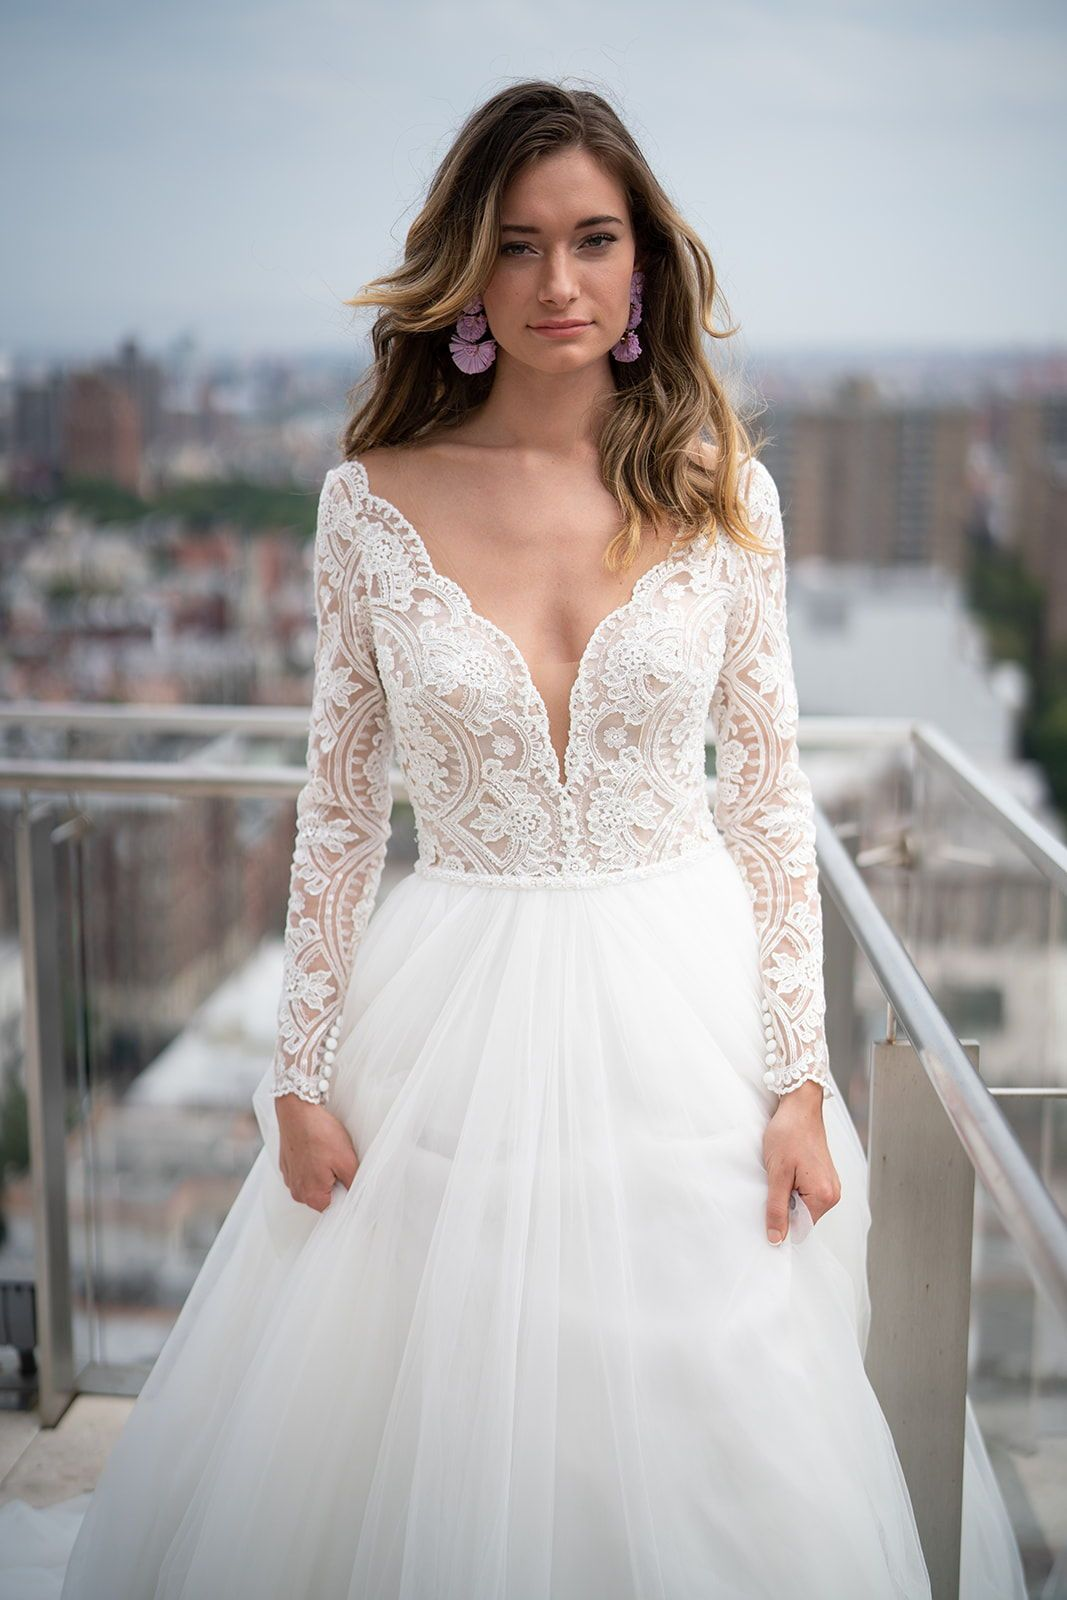 b565fbf9a4 Embellished long sleeve lace wedding dress with ballgown skirt. Mallory  Dawn by Maggie Sottero.